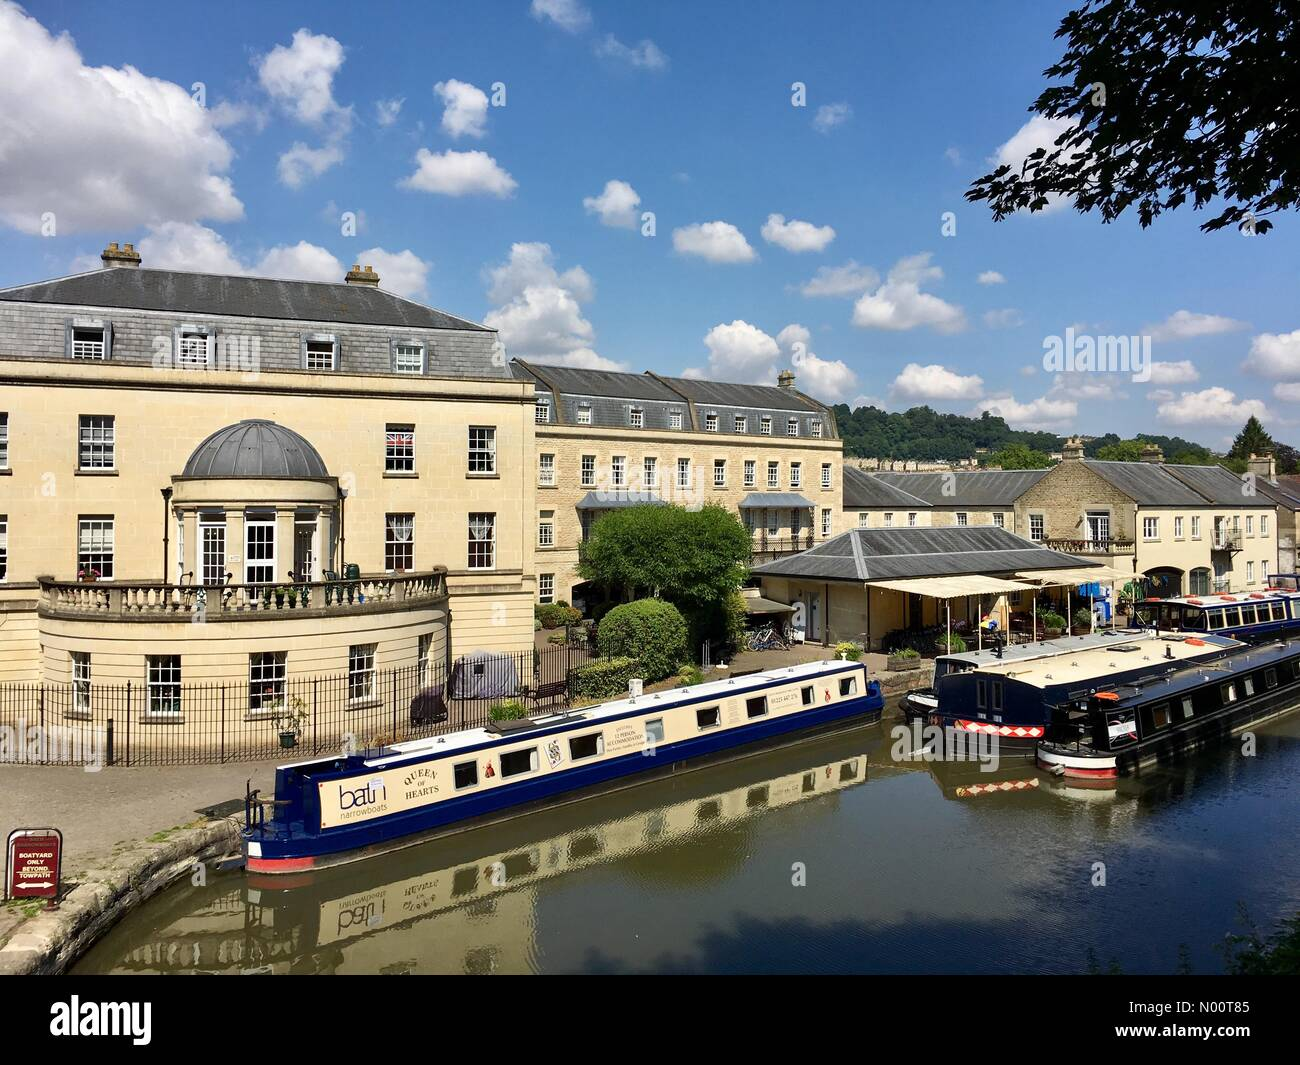 uk-weather-bath-england-11-july-2018-a-s